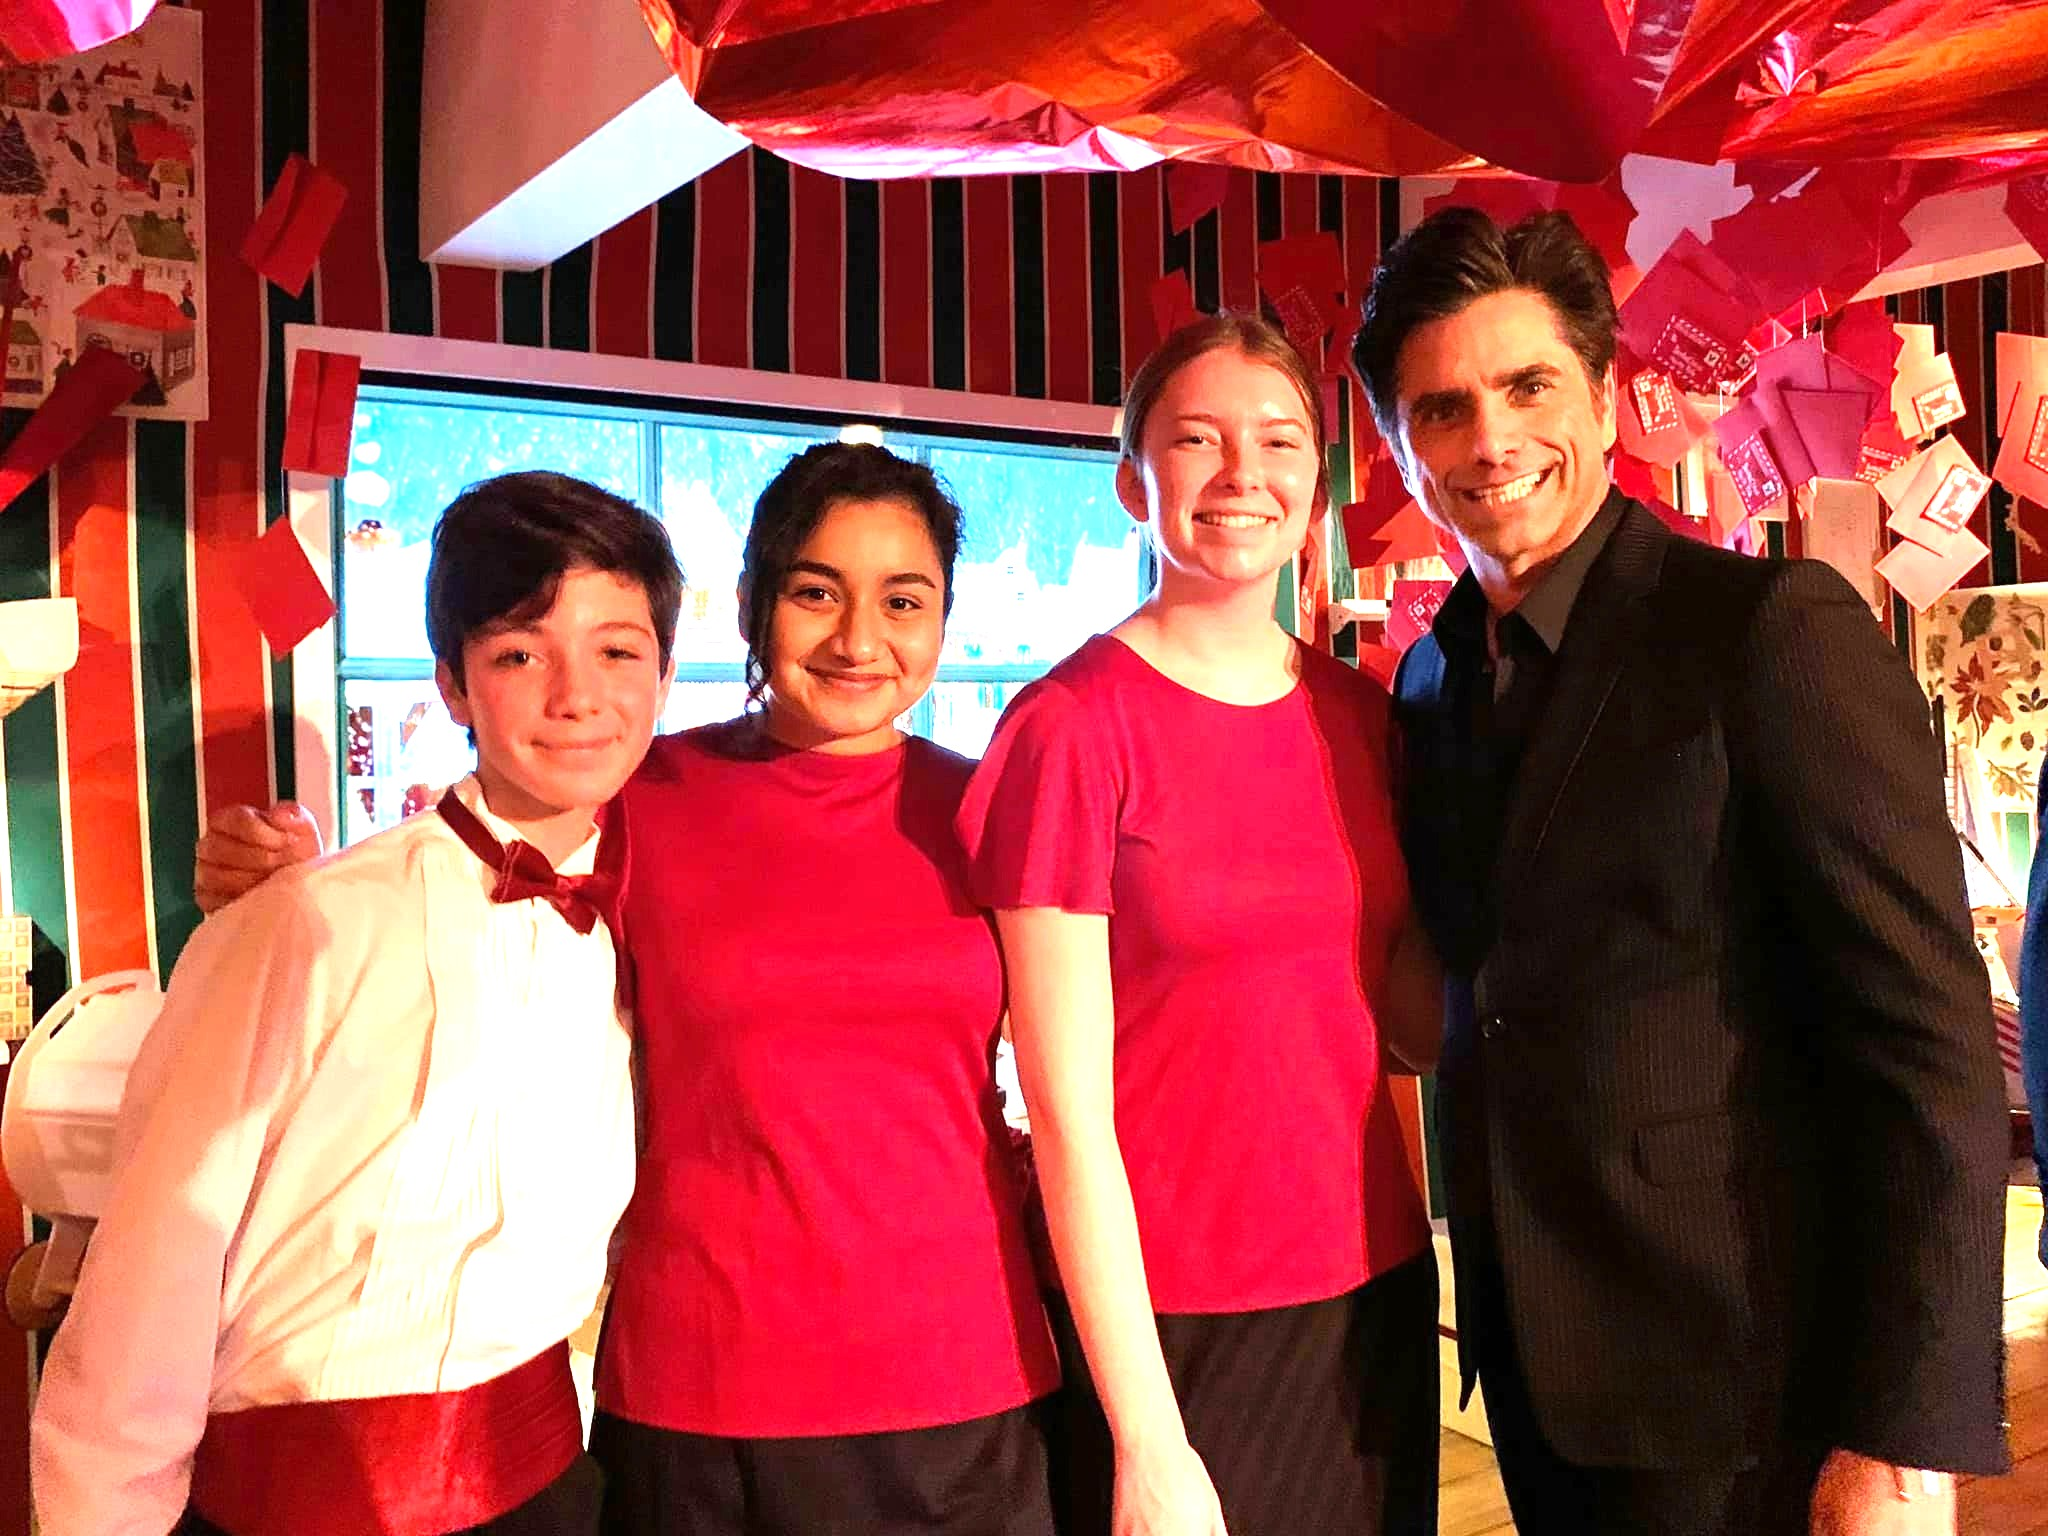 MUSYCA singers with actor John Stamos